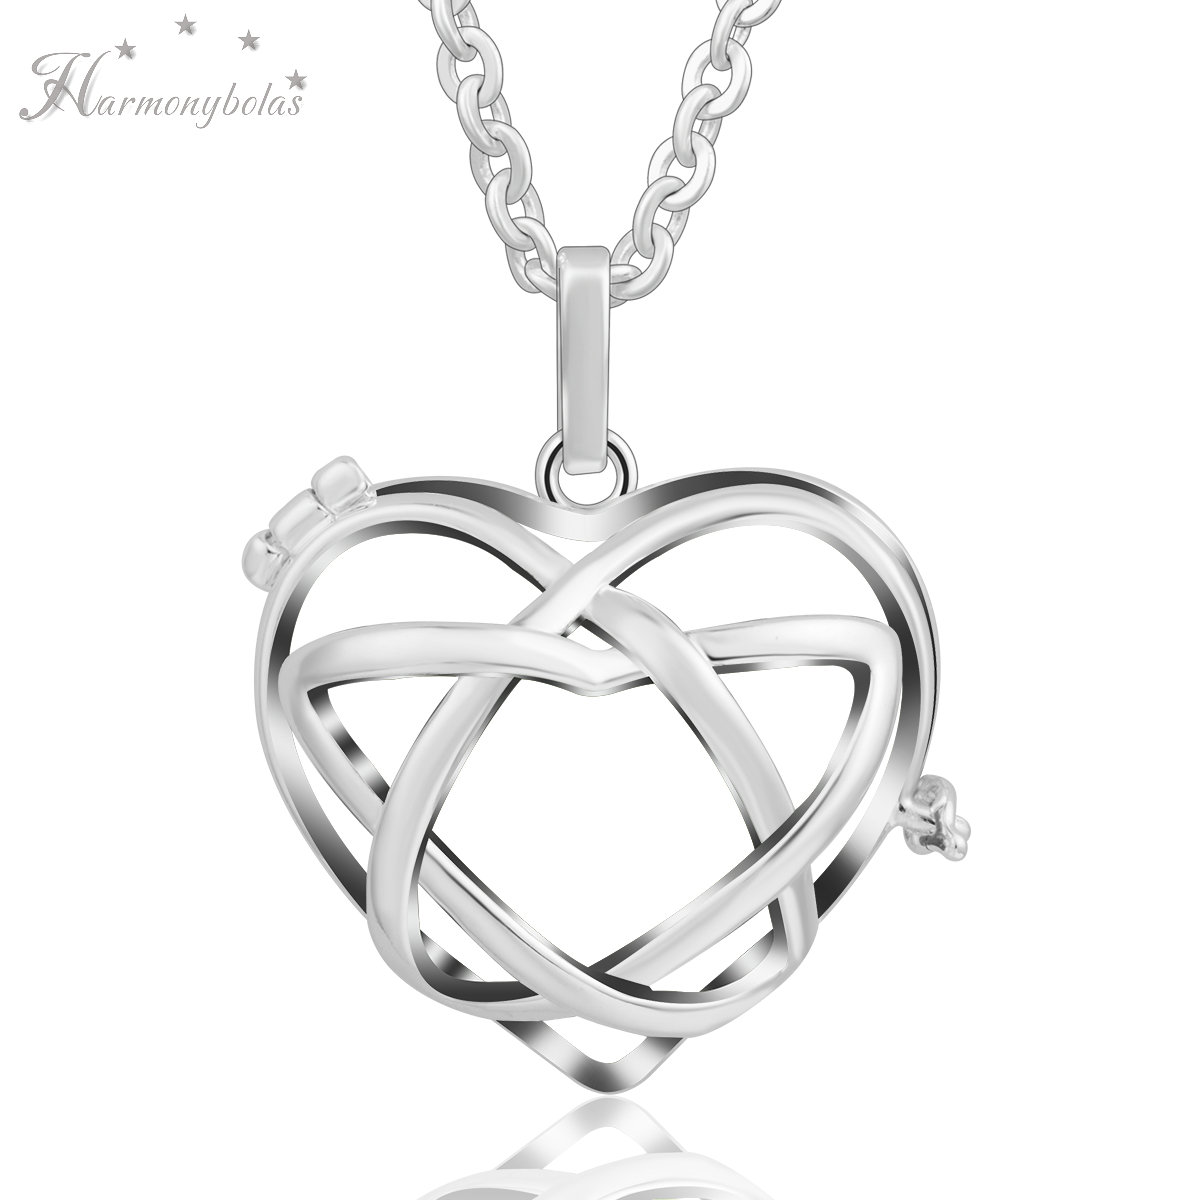 initial knot necklace c celtic collection in sterling silver chain pattern initials collections pendant